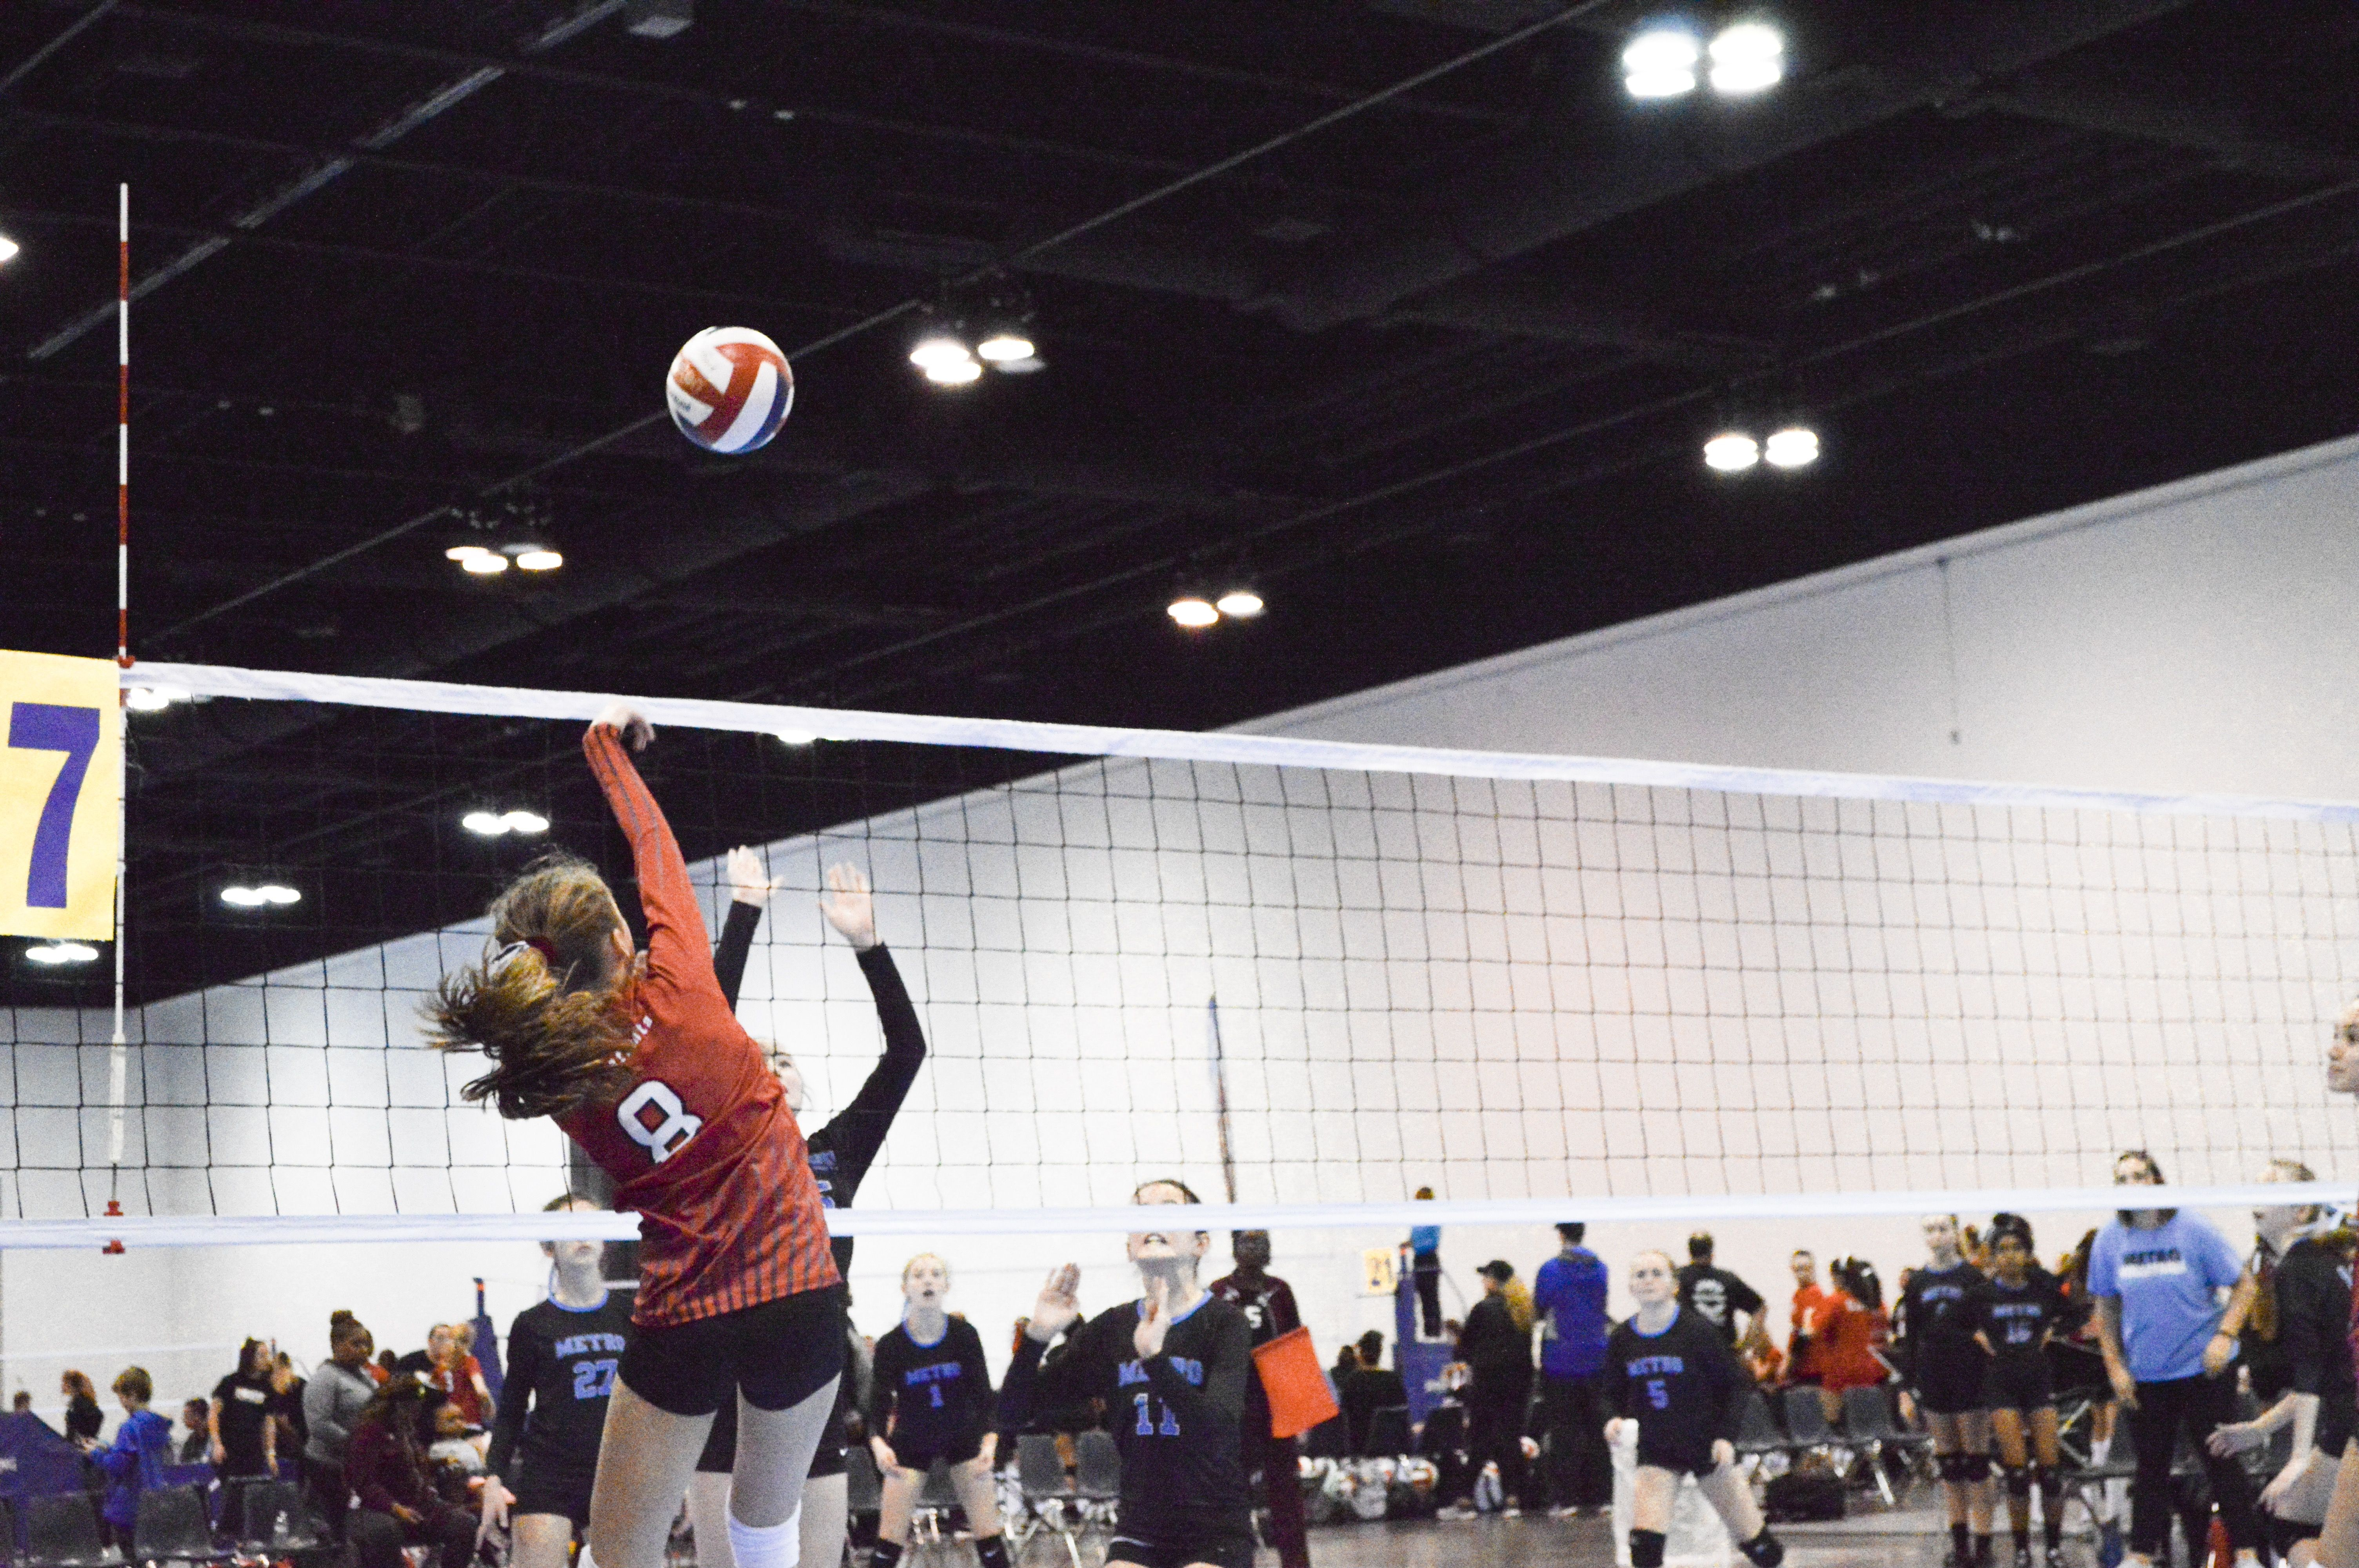 Pin By Erin Bailey On Volleyball With Images Volleyball Inspiration Volleyball Pictures Volleyball